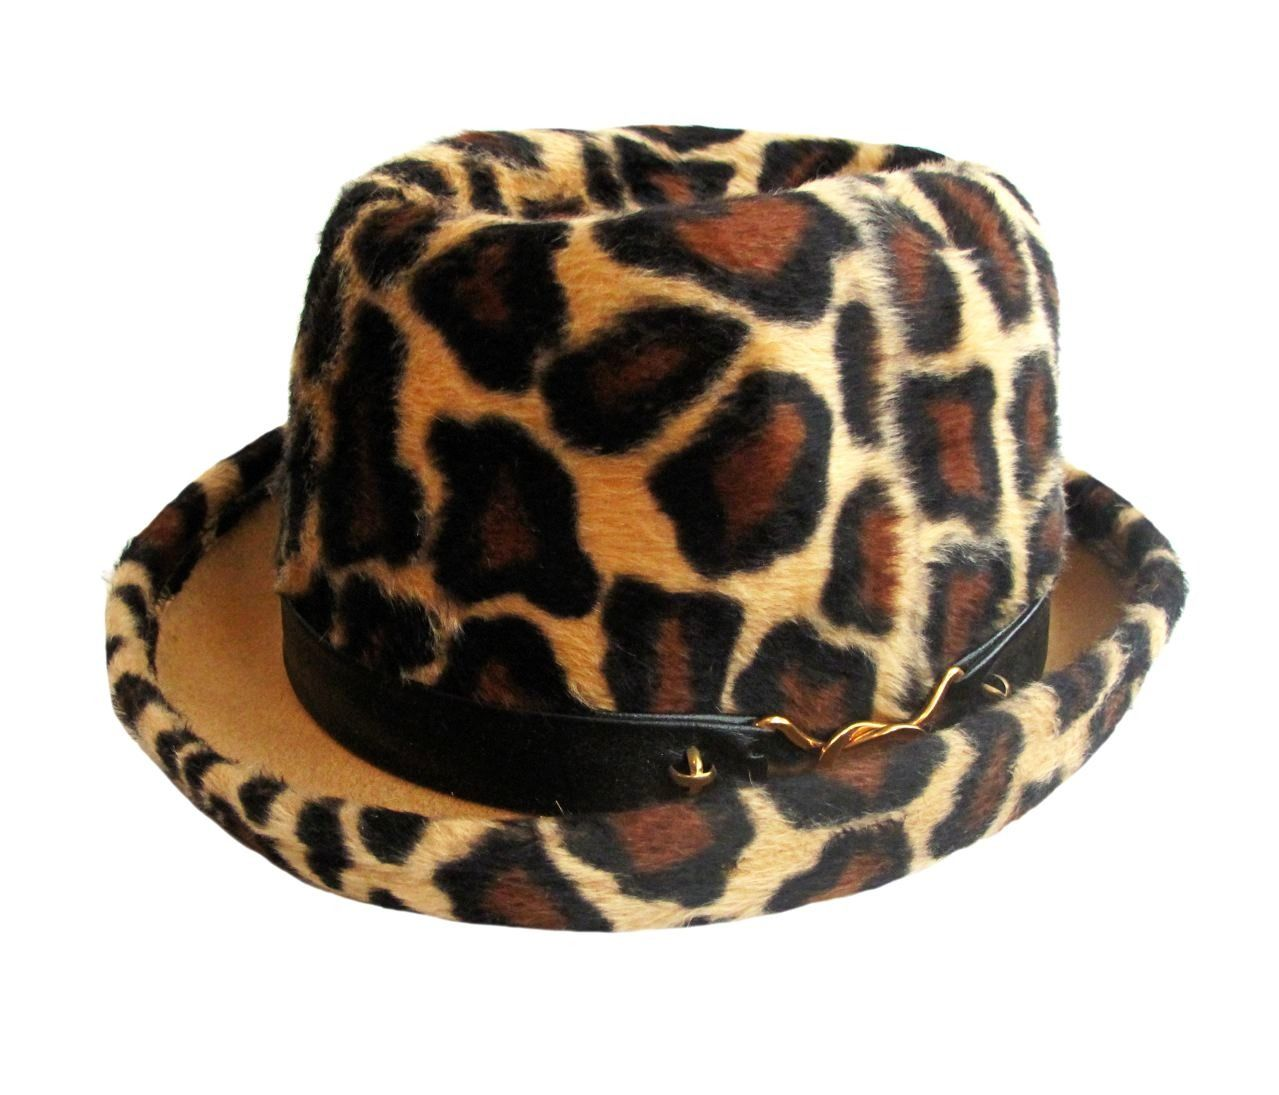 7b630768a A Rare YSL Vintage Leopard Print Hat Yves Saint Laurent   From a collection  of rare